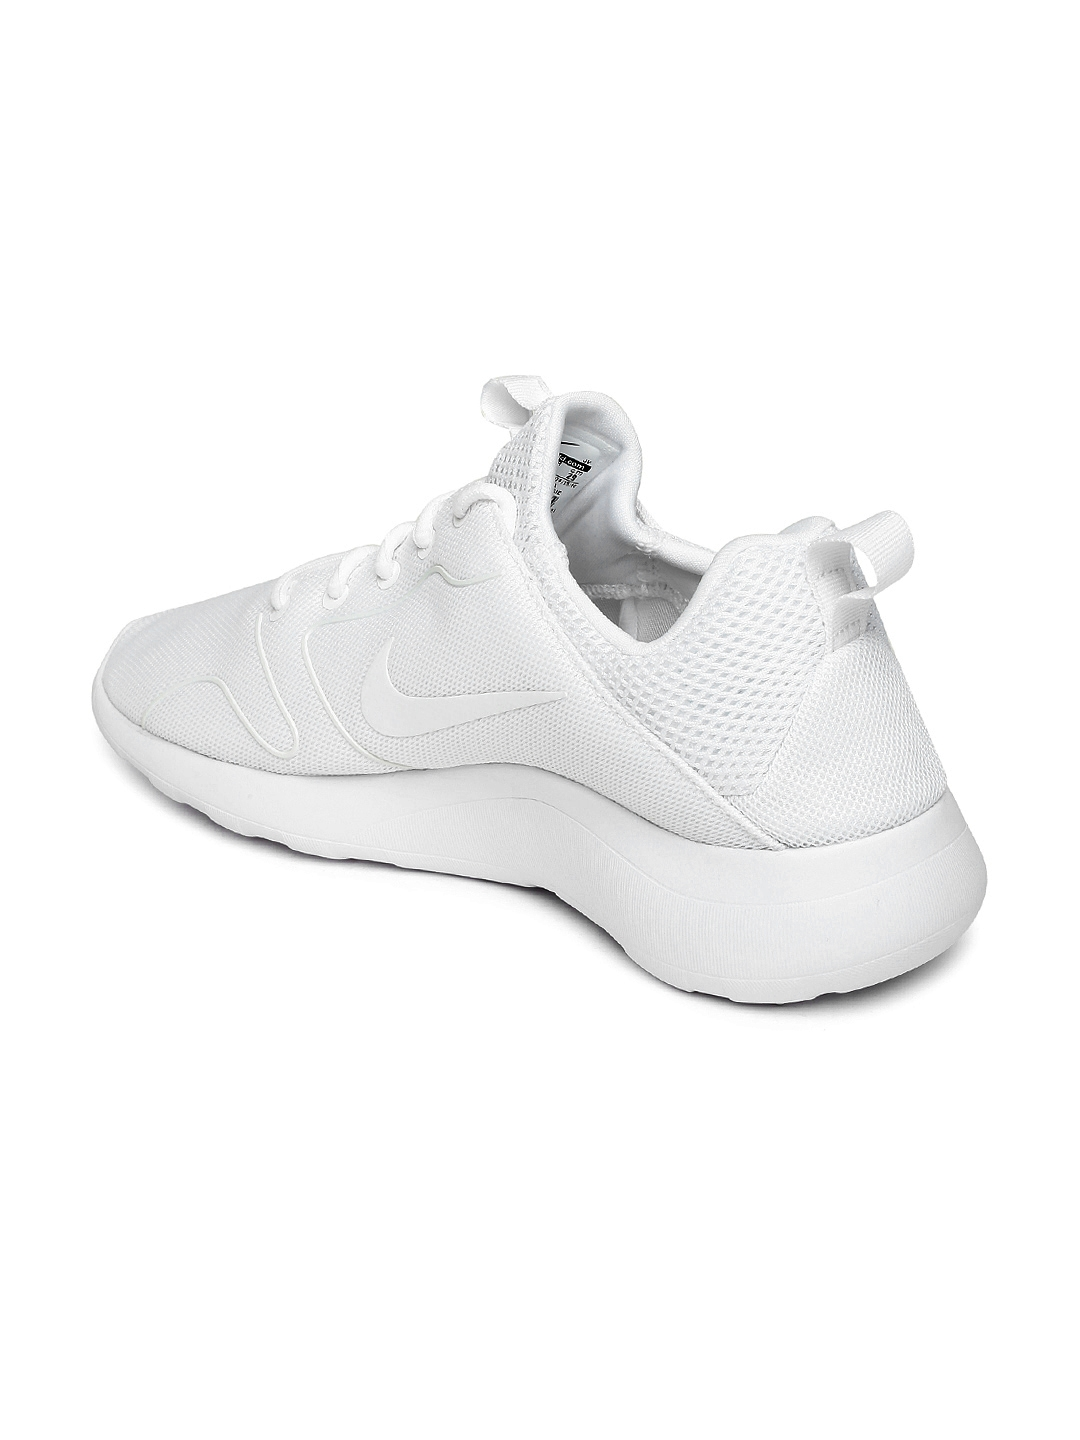 3b873f26f24b Buy Nike Men White Kaishi 2.0 Sneakers - Casual Shoes for Men ...